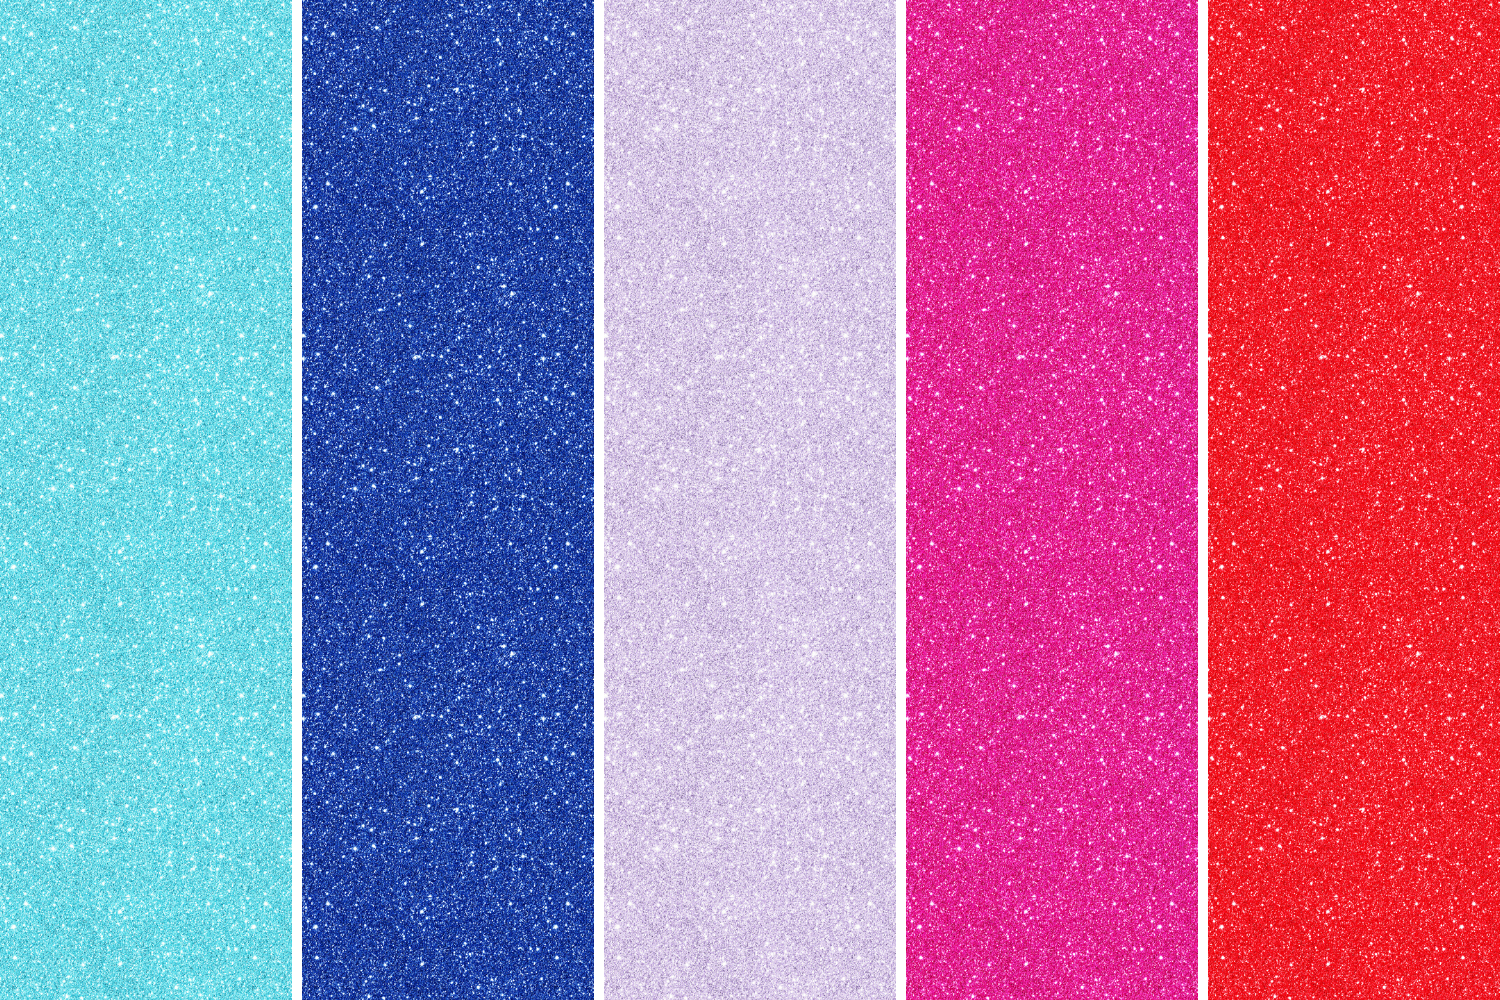 100 Glitter Paper, Glittered scrapbooking paper, Digital Papers By Old Continent...